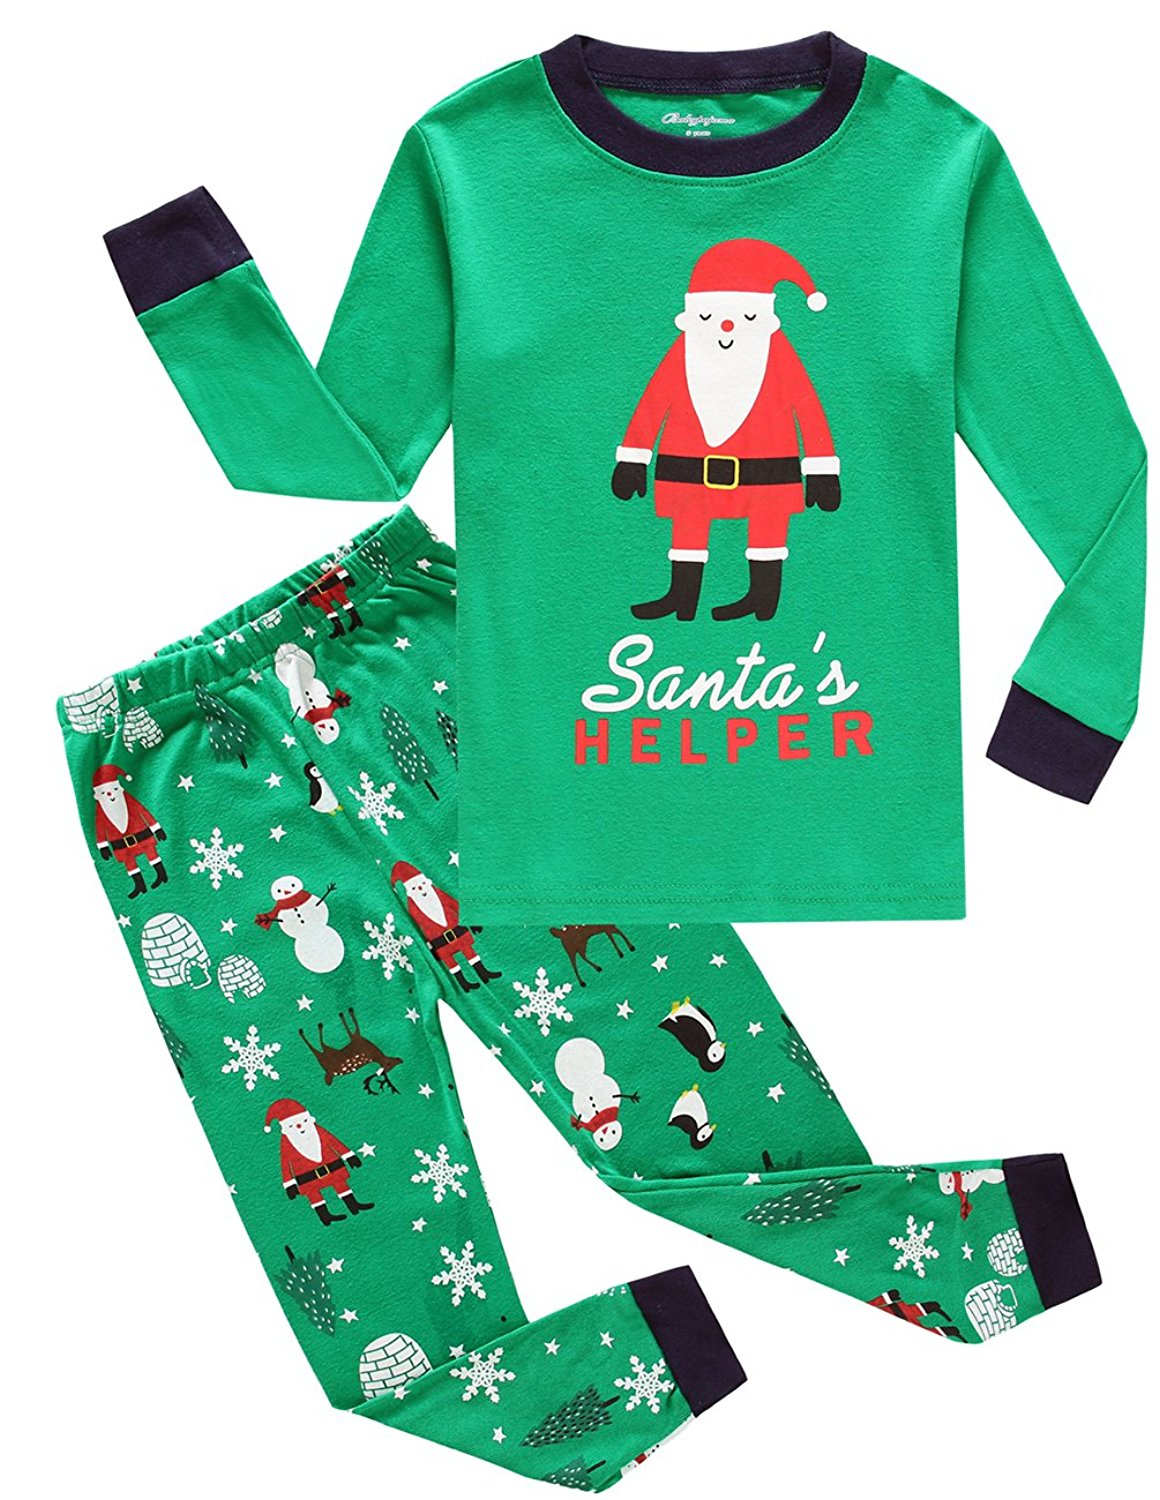 87b13a5a54 Get Quotations · Little bety Toddler Christmas Pajamas Big Boys Pjs Cotton  Kids Sleepwear Clothes